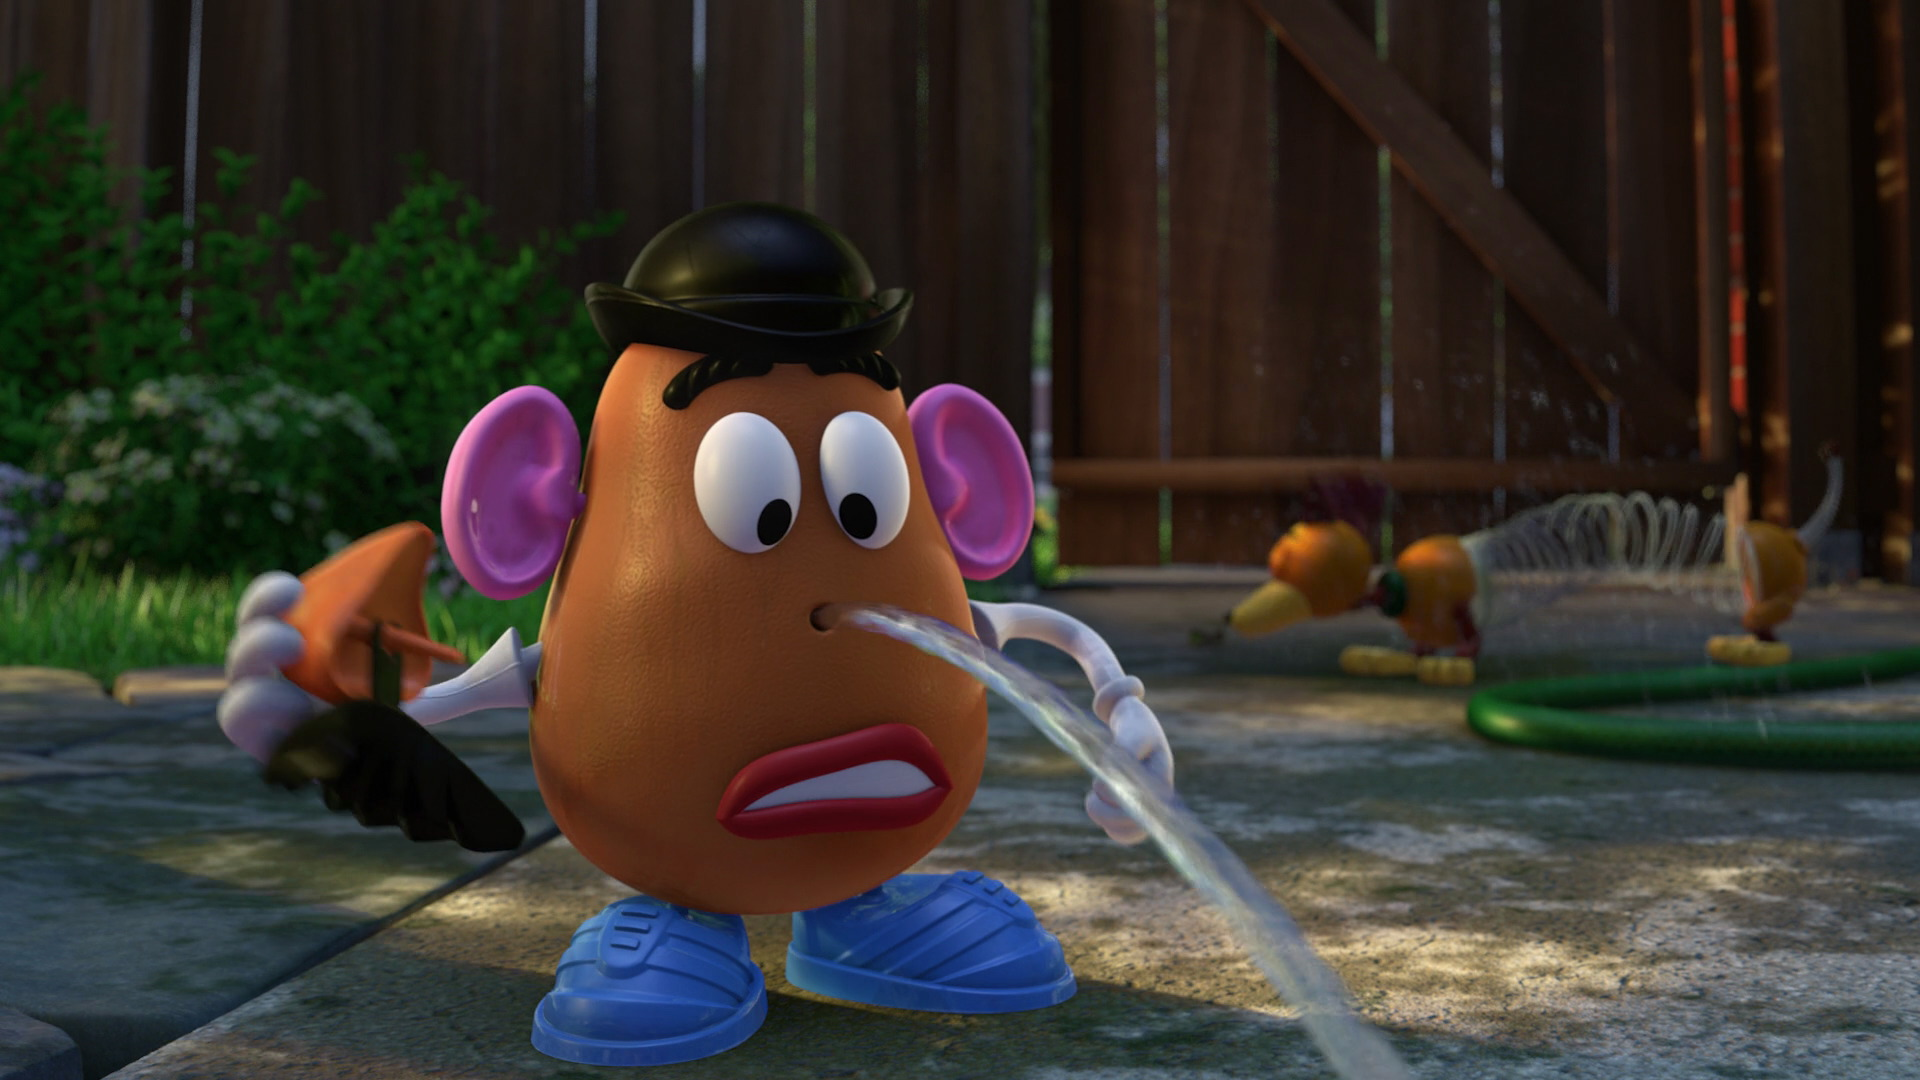 Mr potato head character from toy story pixar planet fr - Madame patate toy story ...